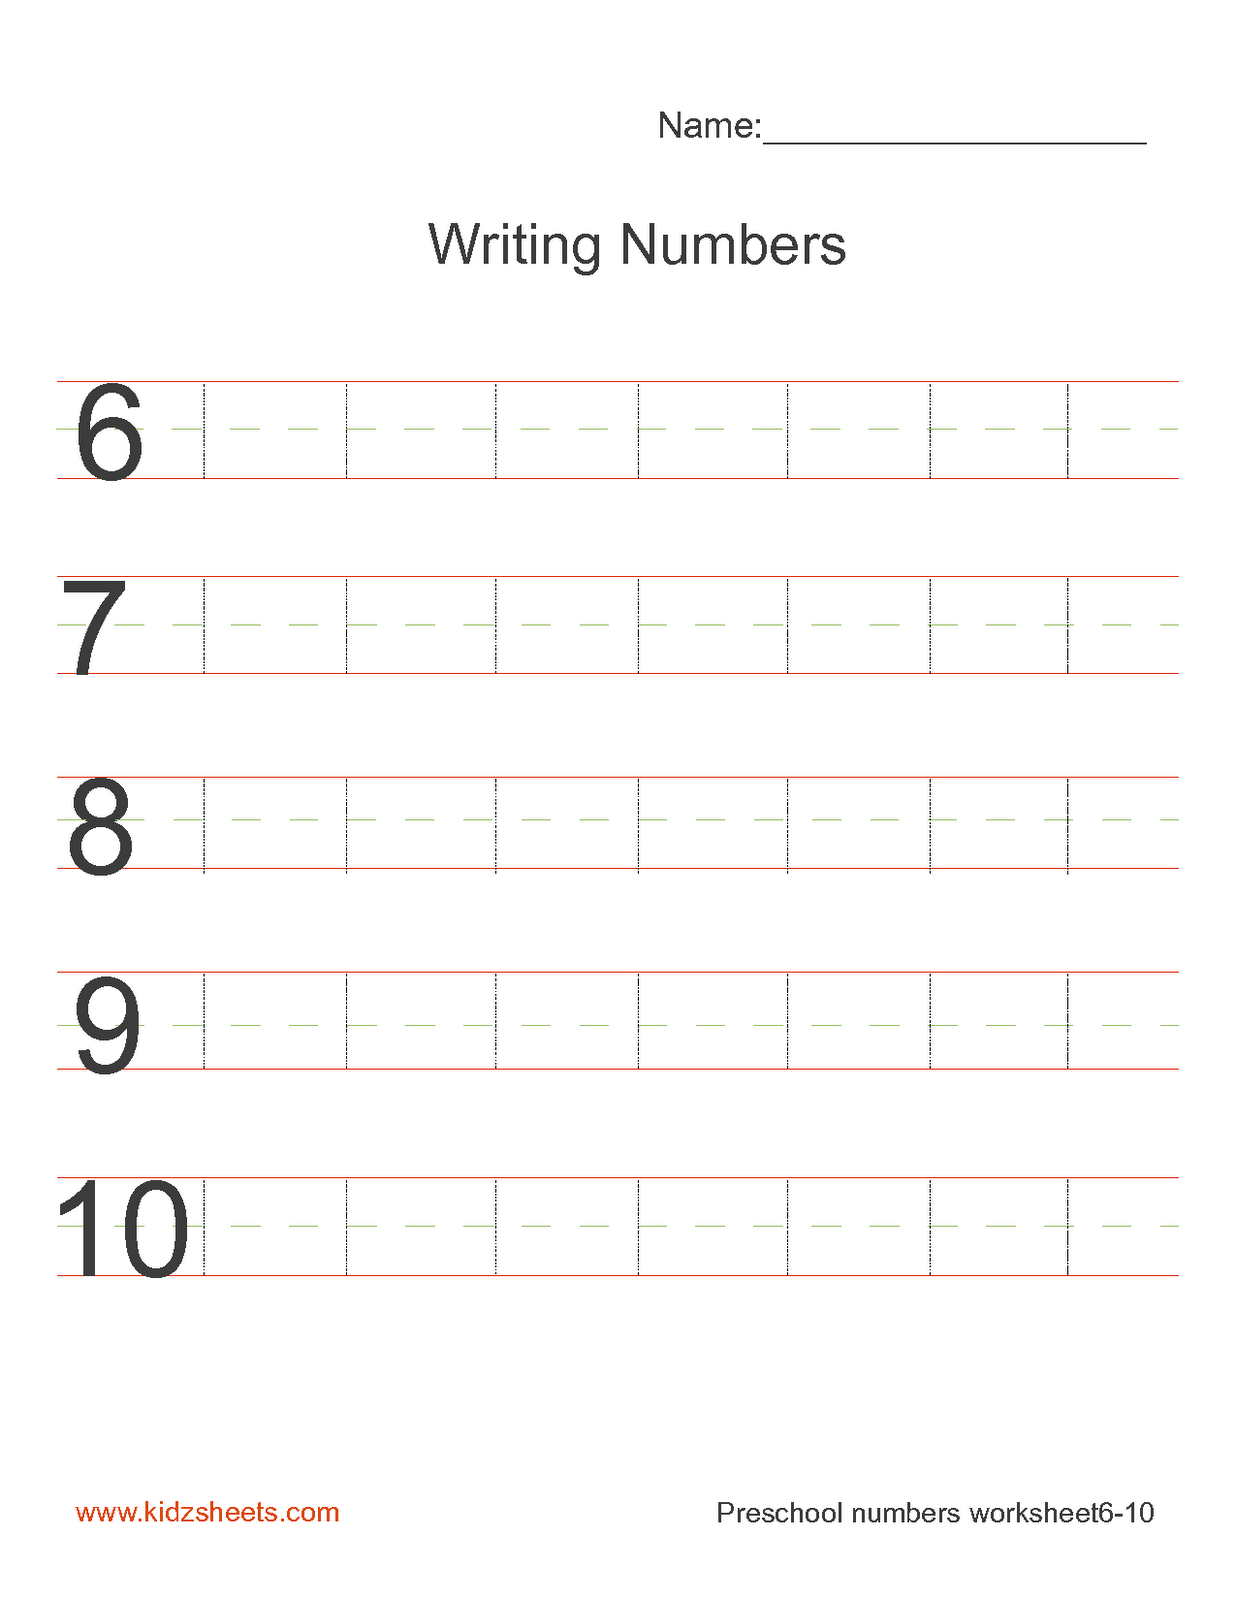 Worksheet Preschool Writing Practice number writing worksheets 1 20 html preschool 10 on practice numbers 1